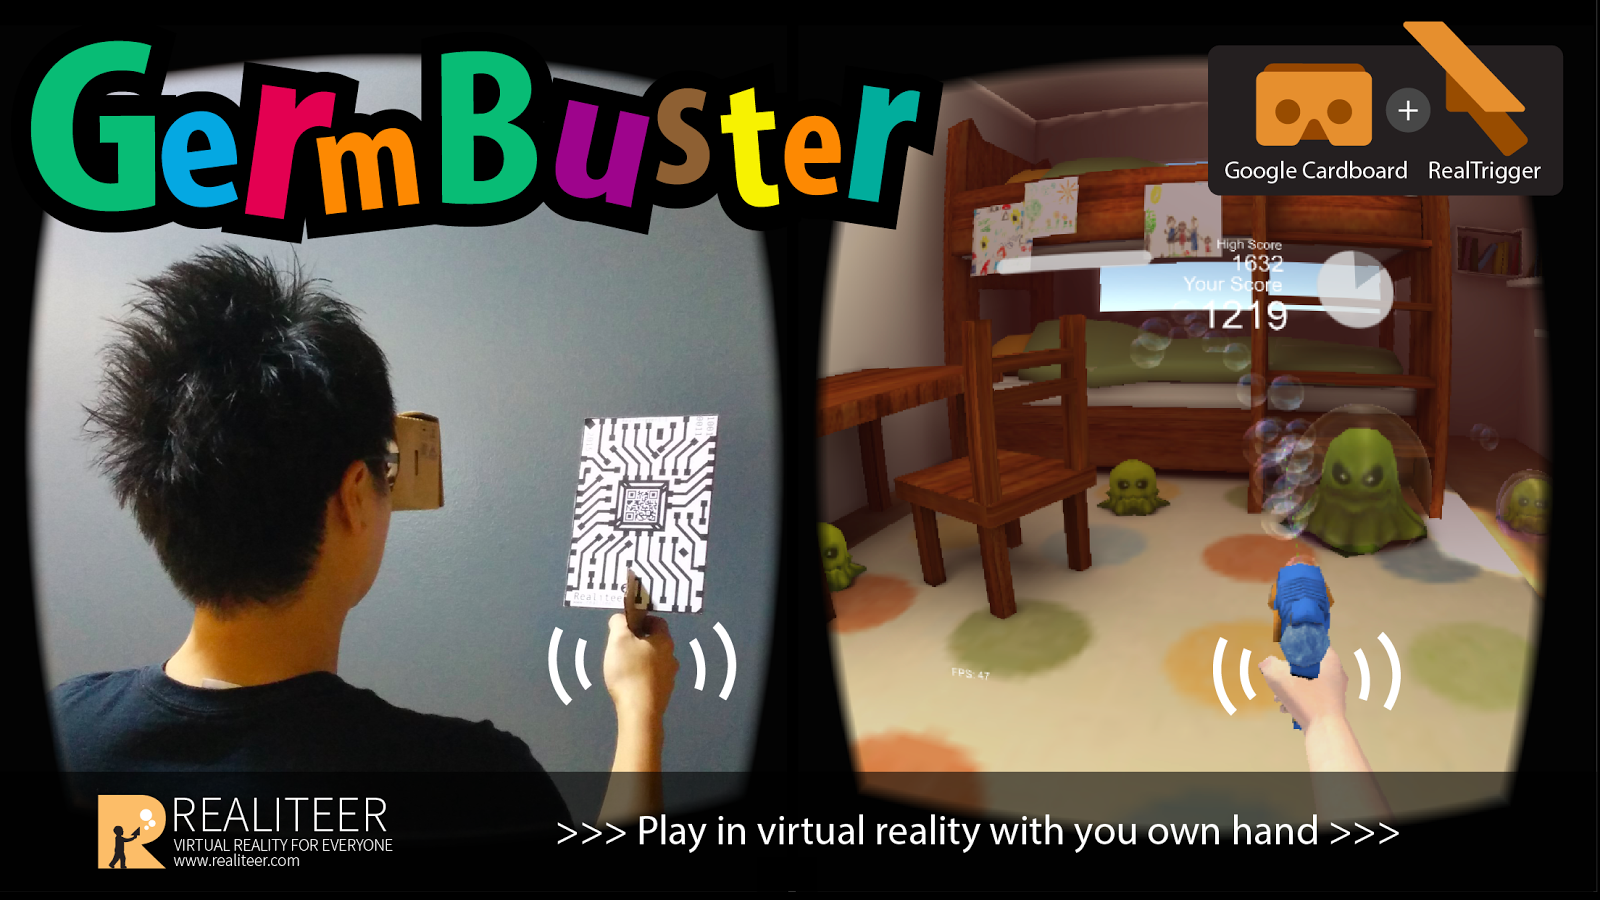 GermBuster VR 1 4 APK Download - Android Action Games